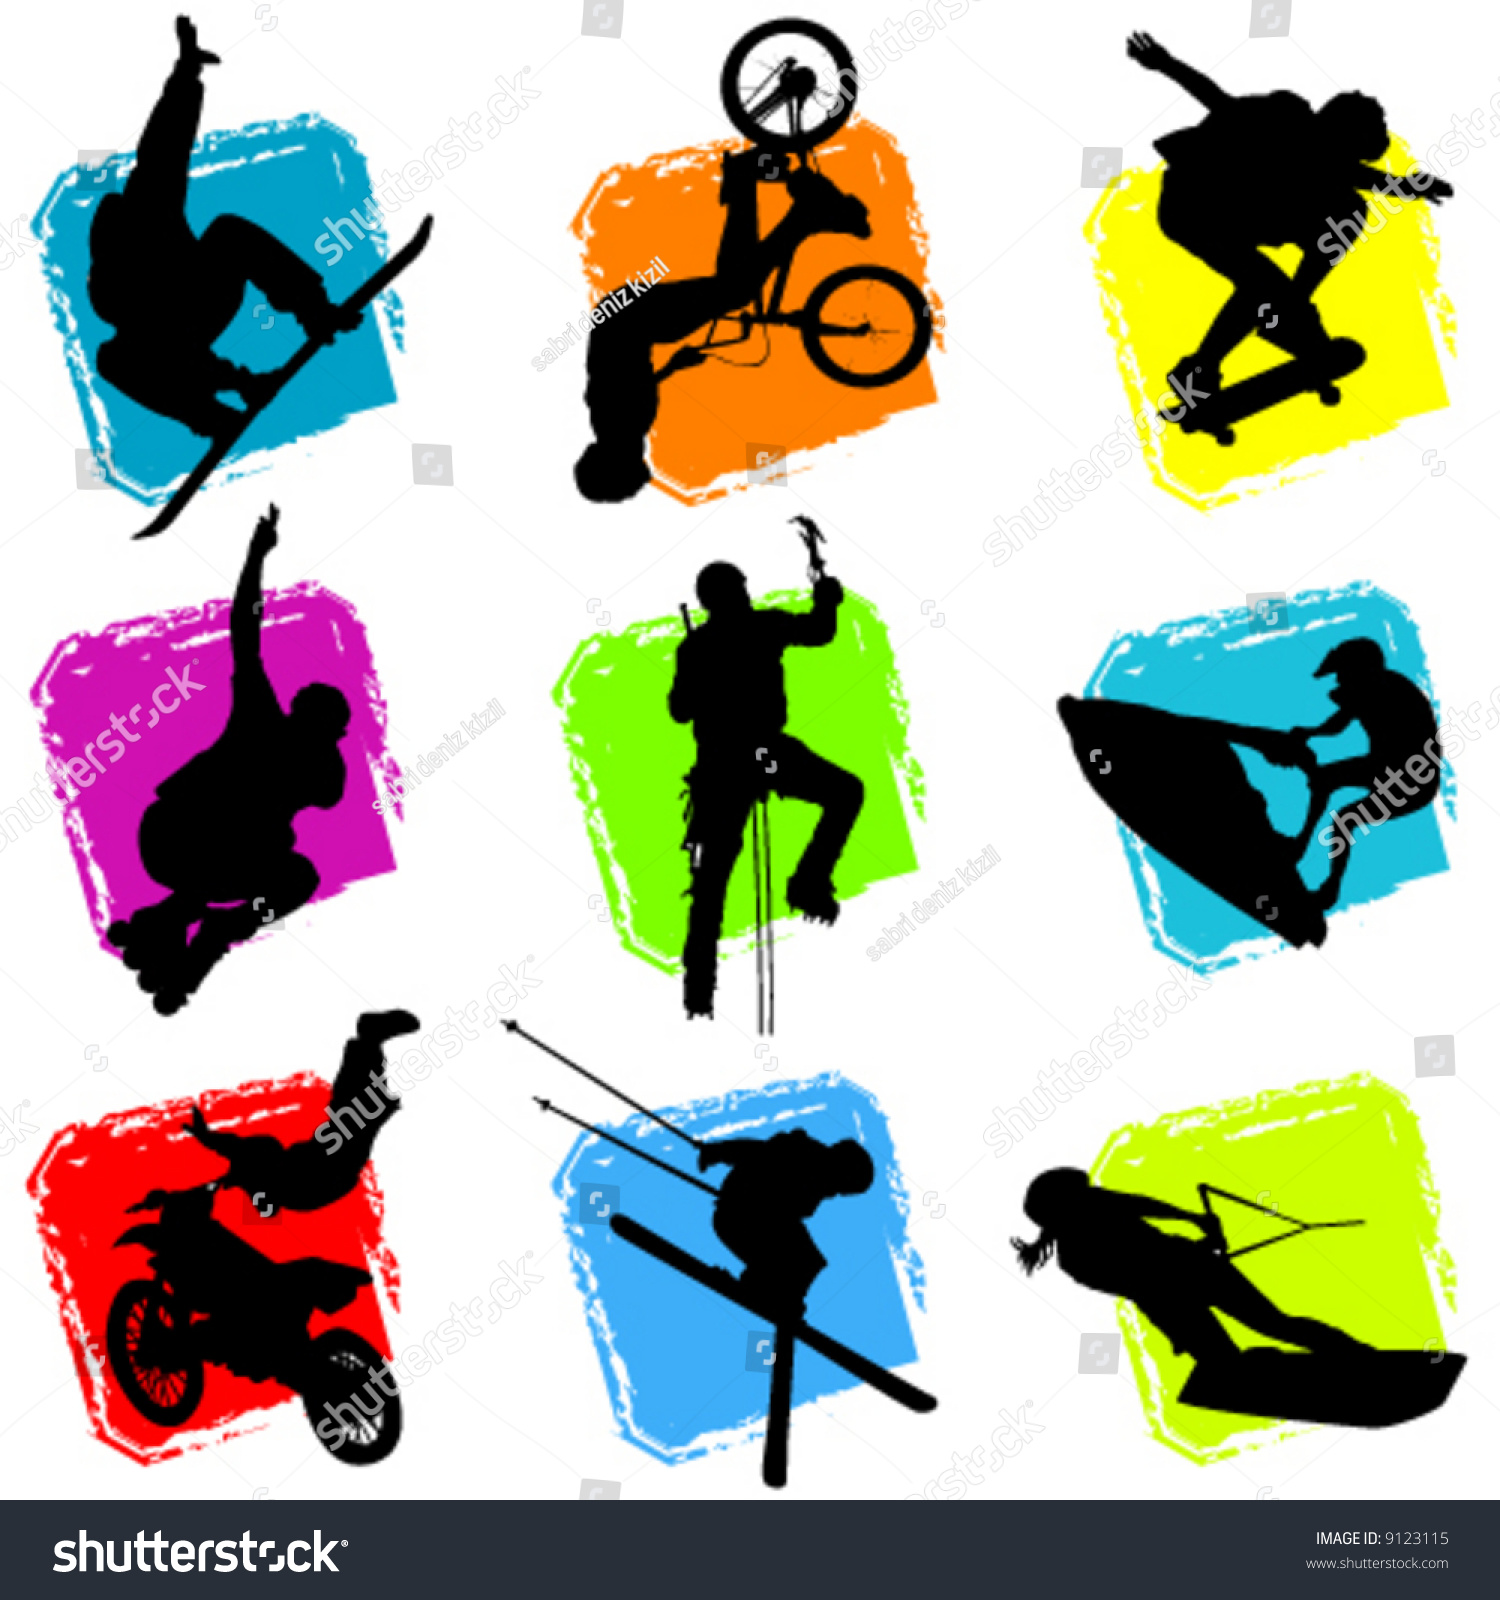 Extreme Sports Vector Stock Vector 9123115 - Shutterstock